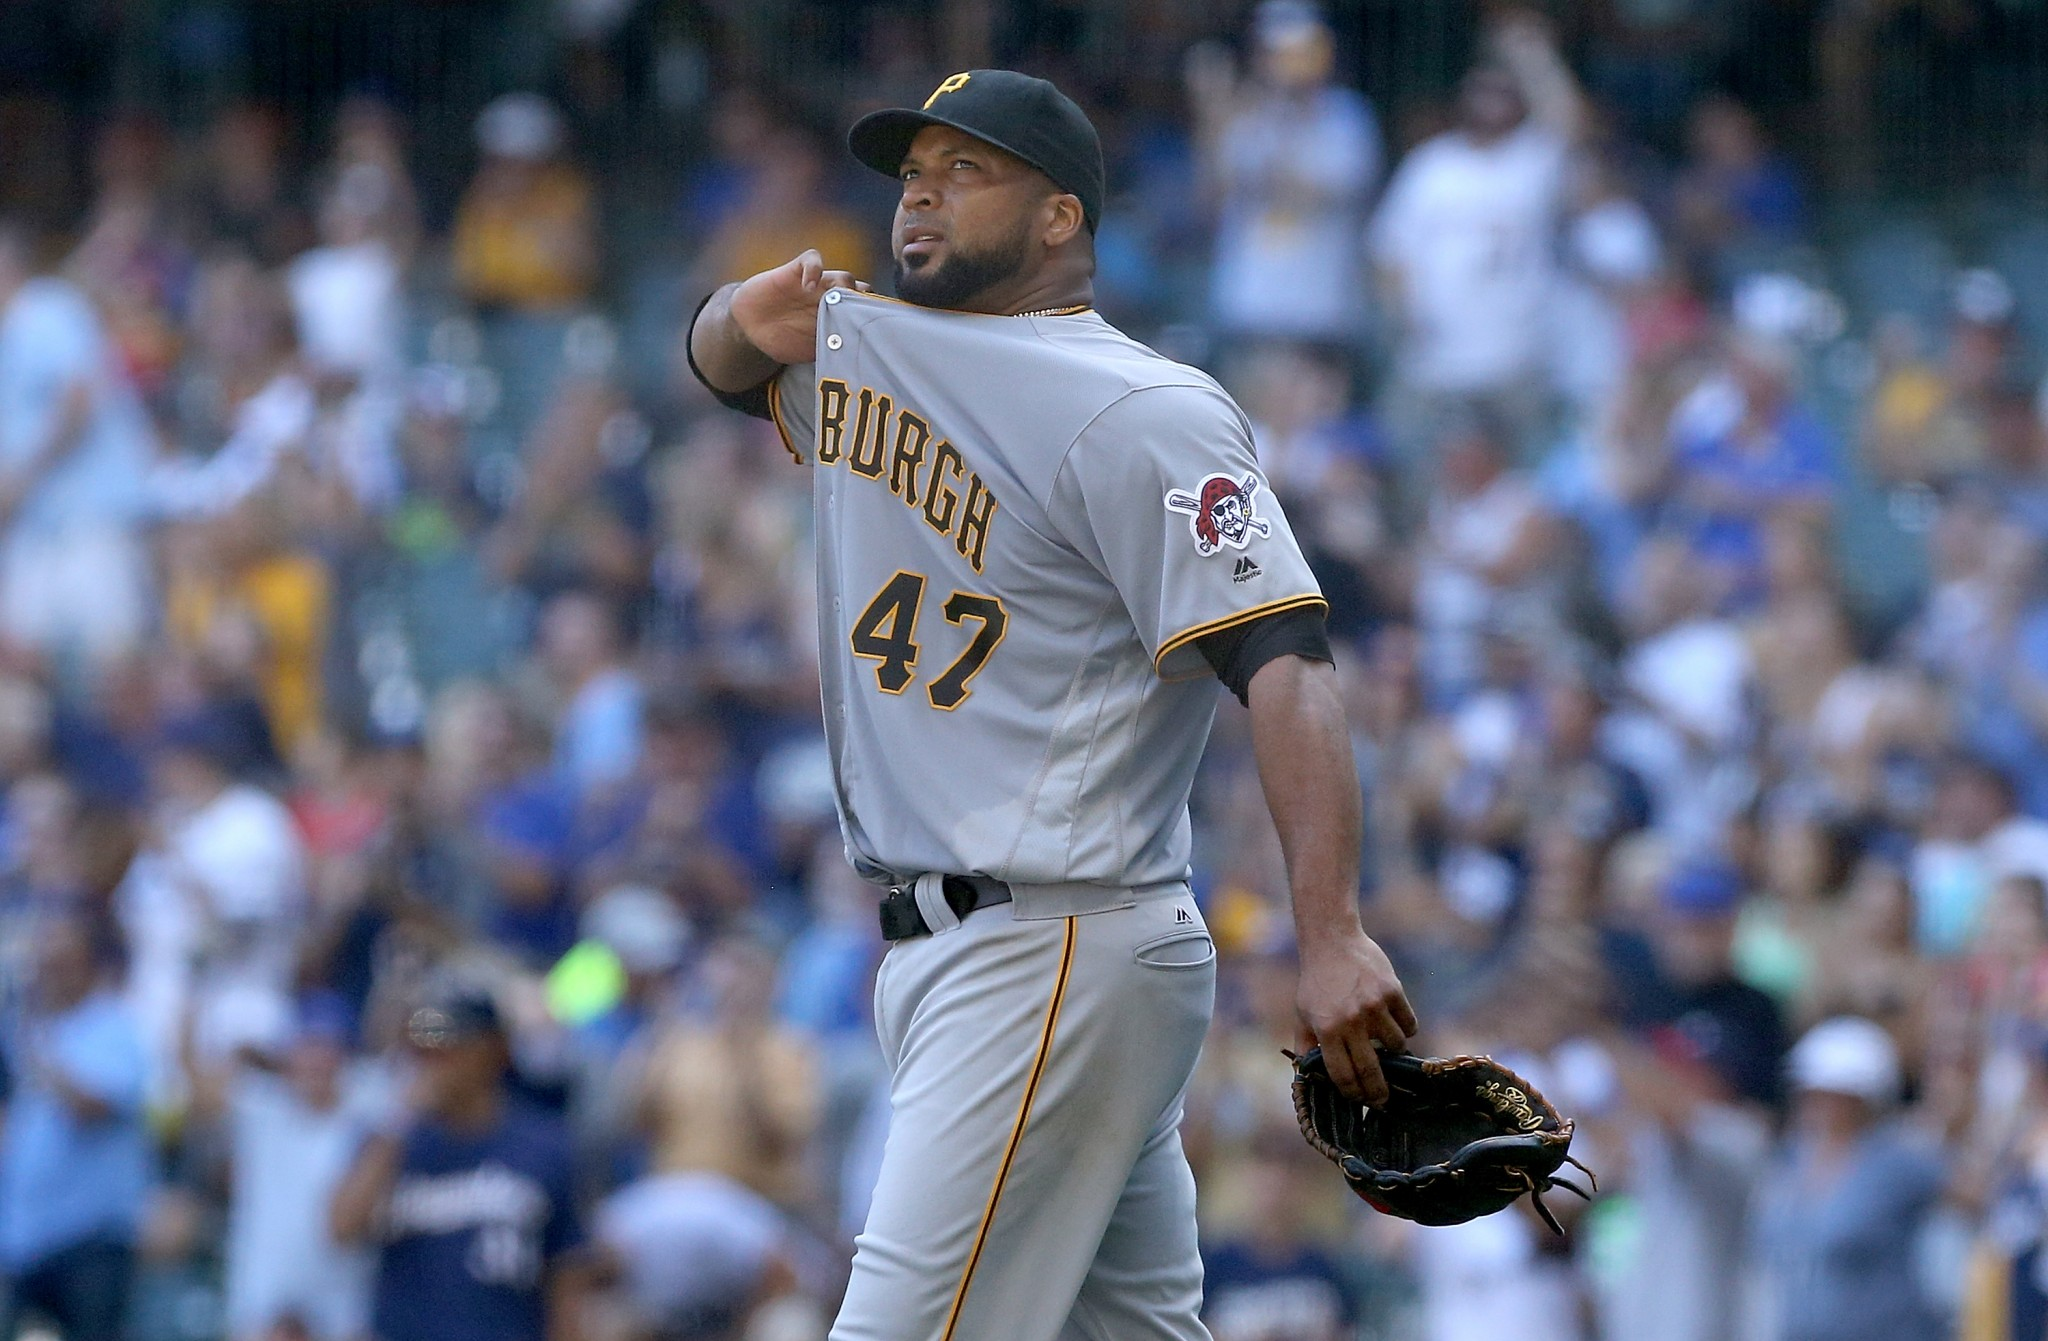 Francisco Liriano will look to turn around his fortunes in Toronto. (Getty Images/Dylan Buell)